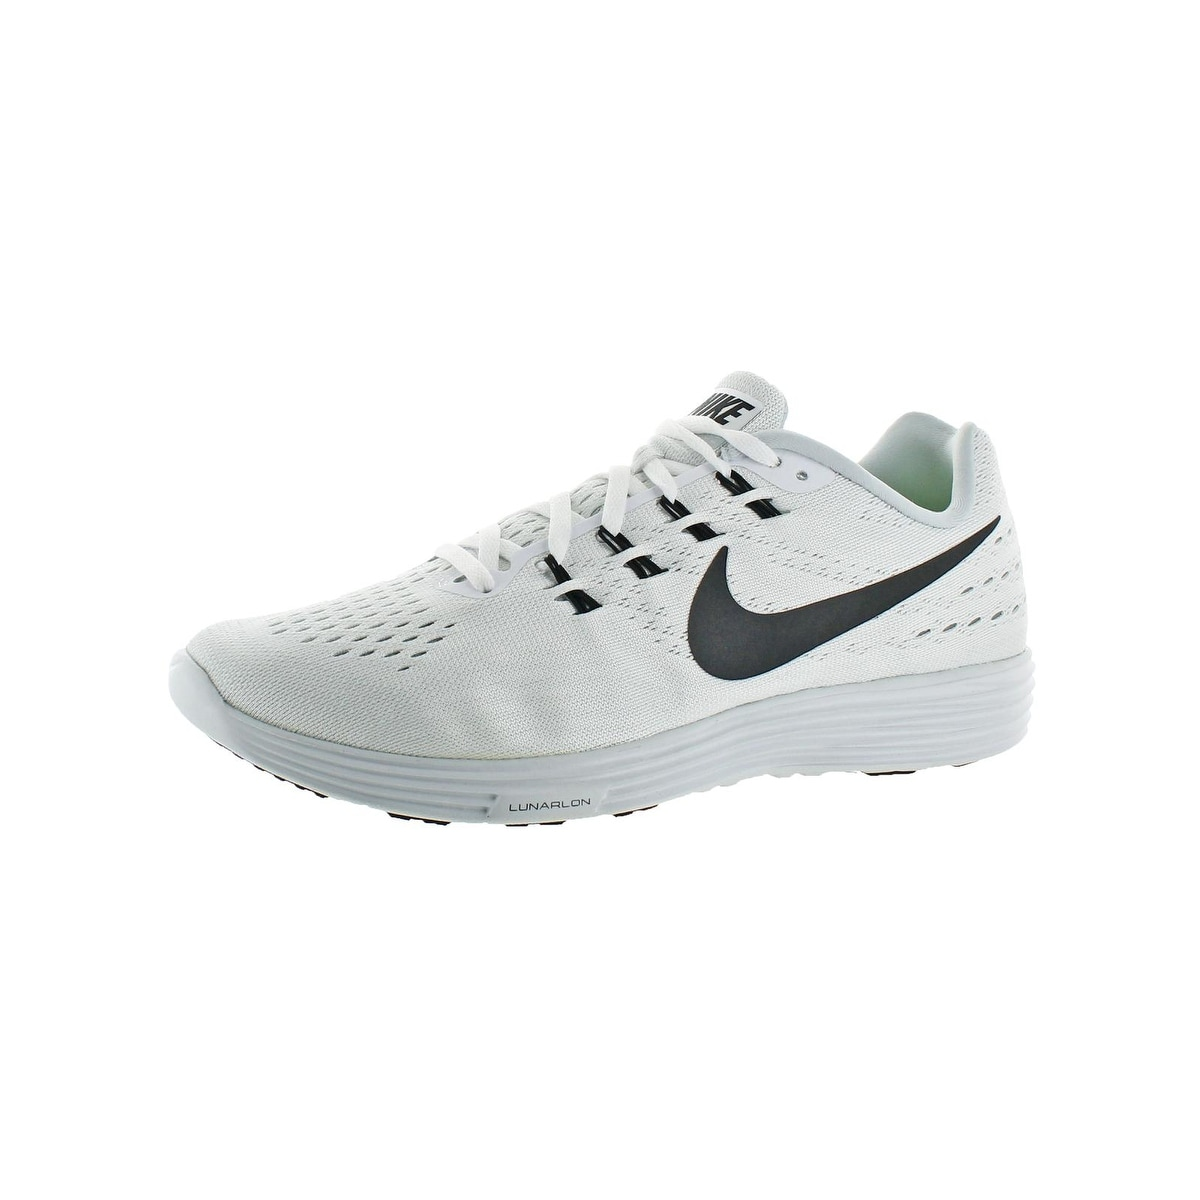 83e185ebb1e Shop Nike Womens Lunartempo 2 Running Shoes Lightweight Athletic - Free  Shipping Today - Overstock - 21802406